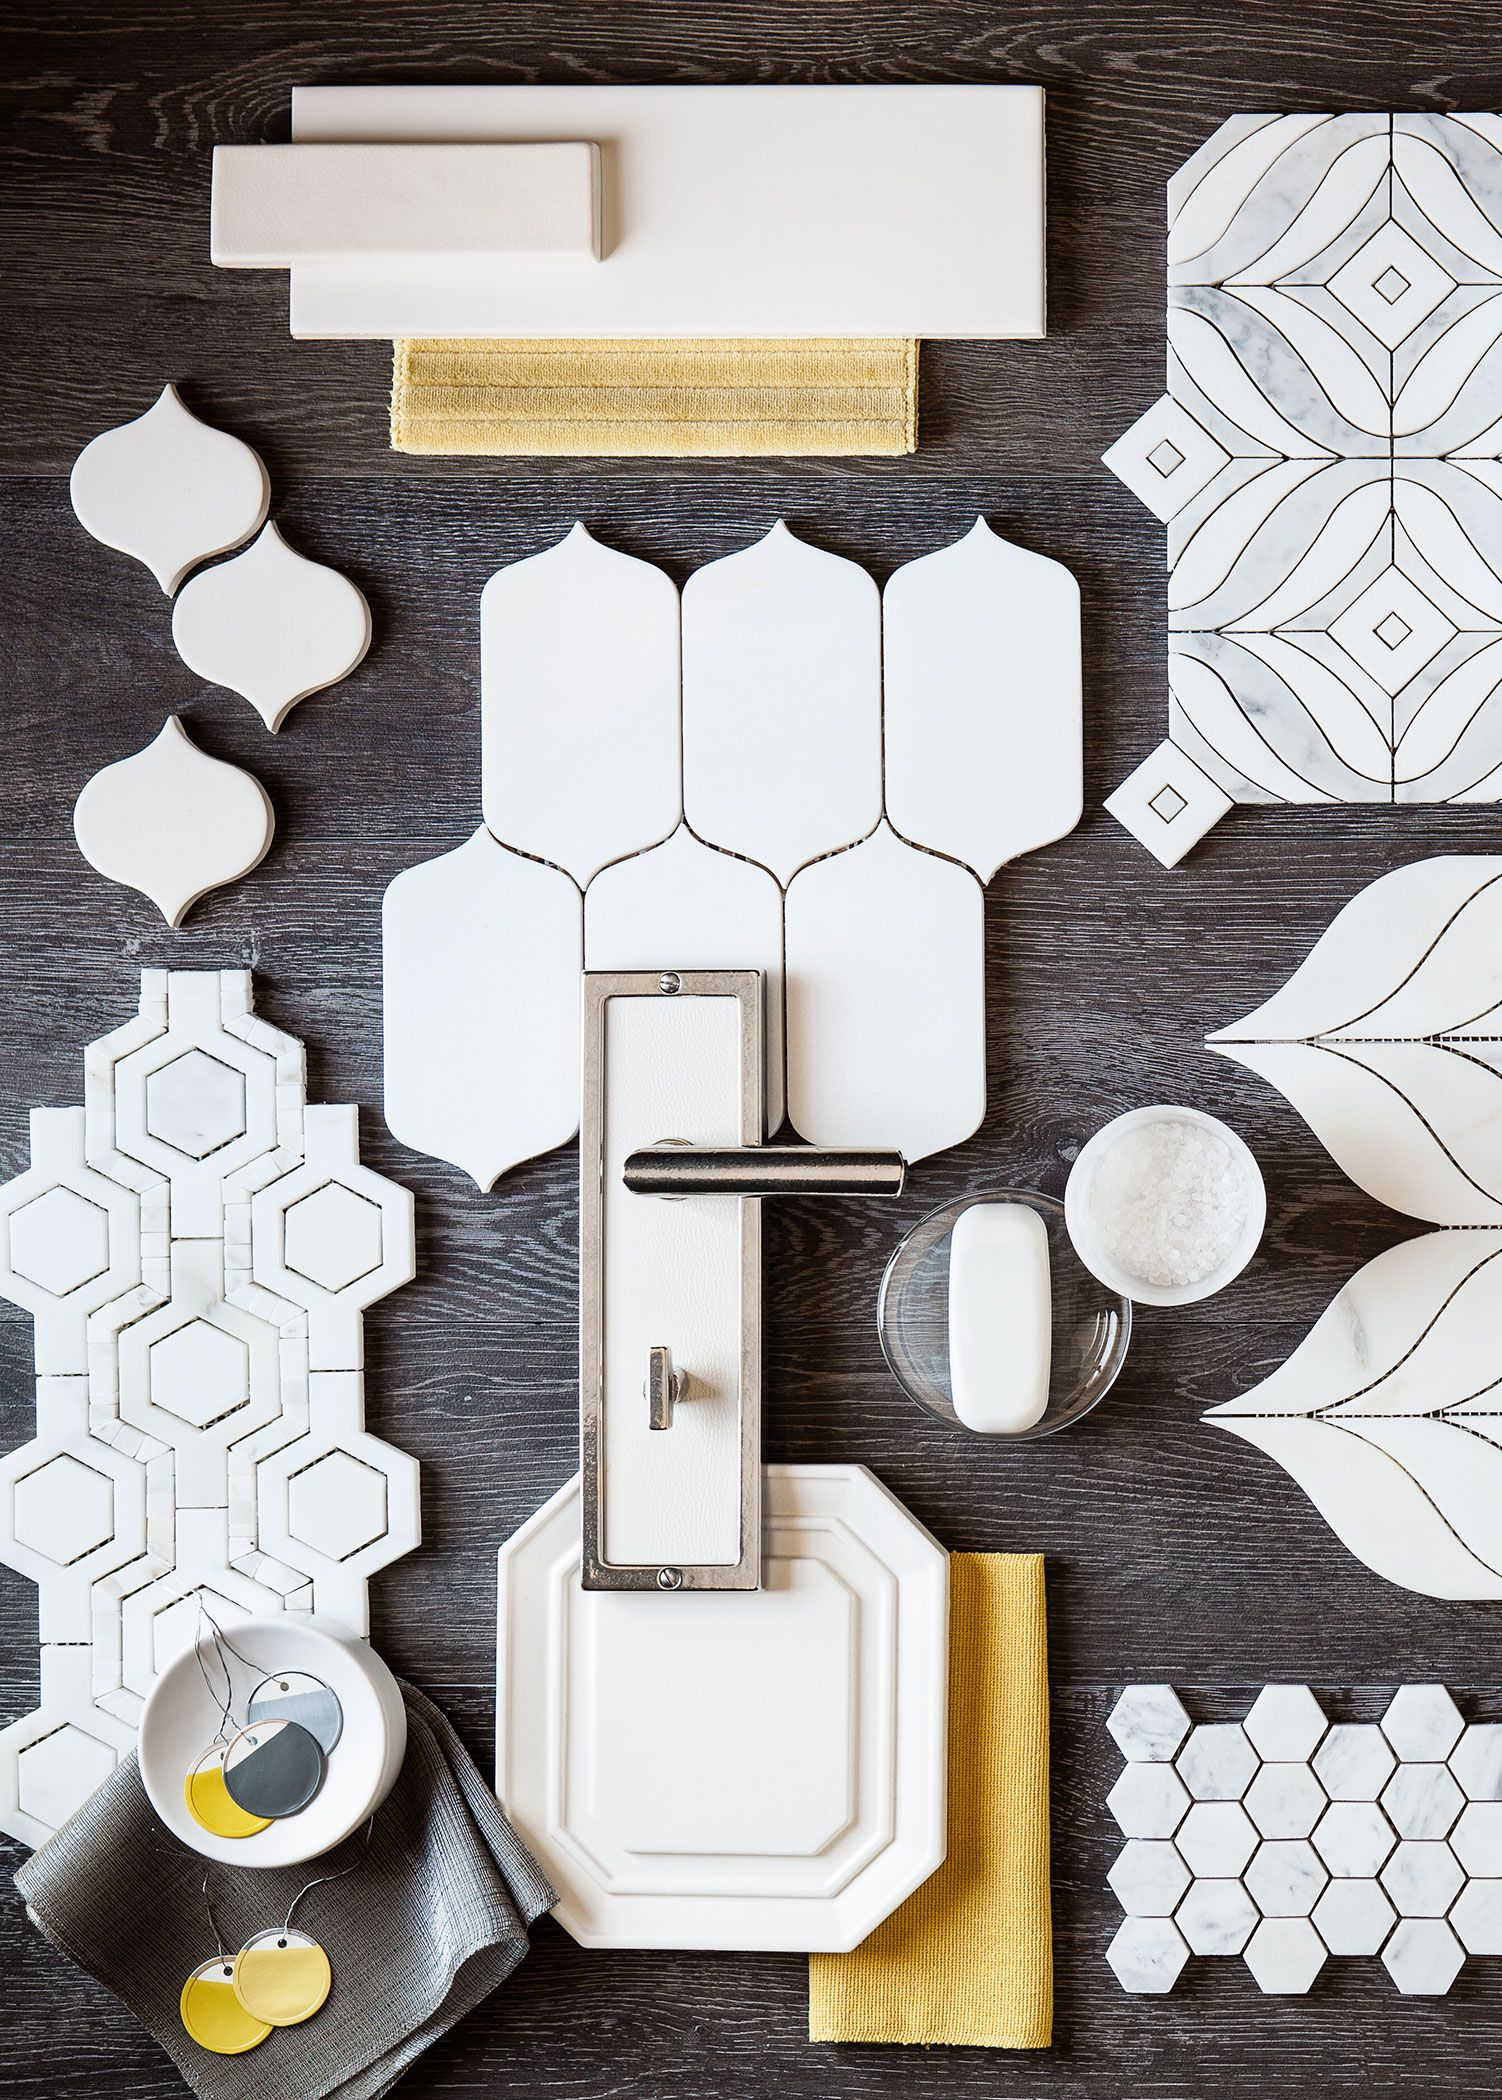 Tiles Design Grey White And Grey With A Touch Of Yellow Make A Snappy Modern